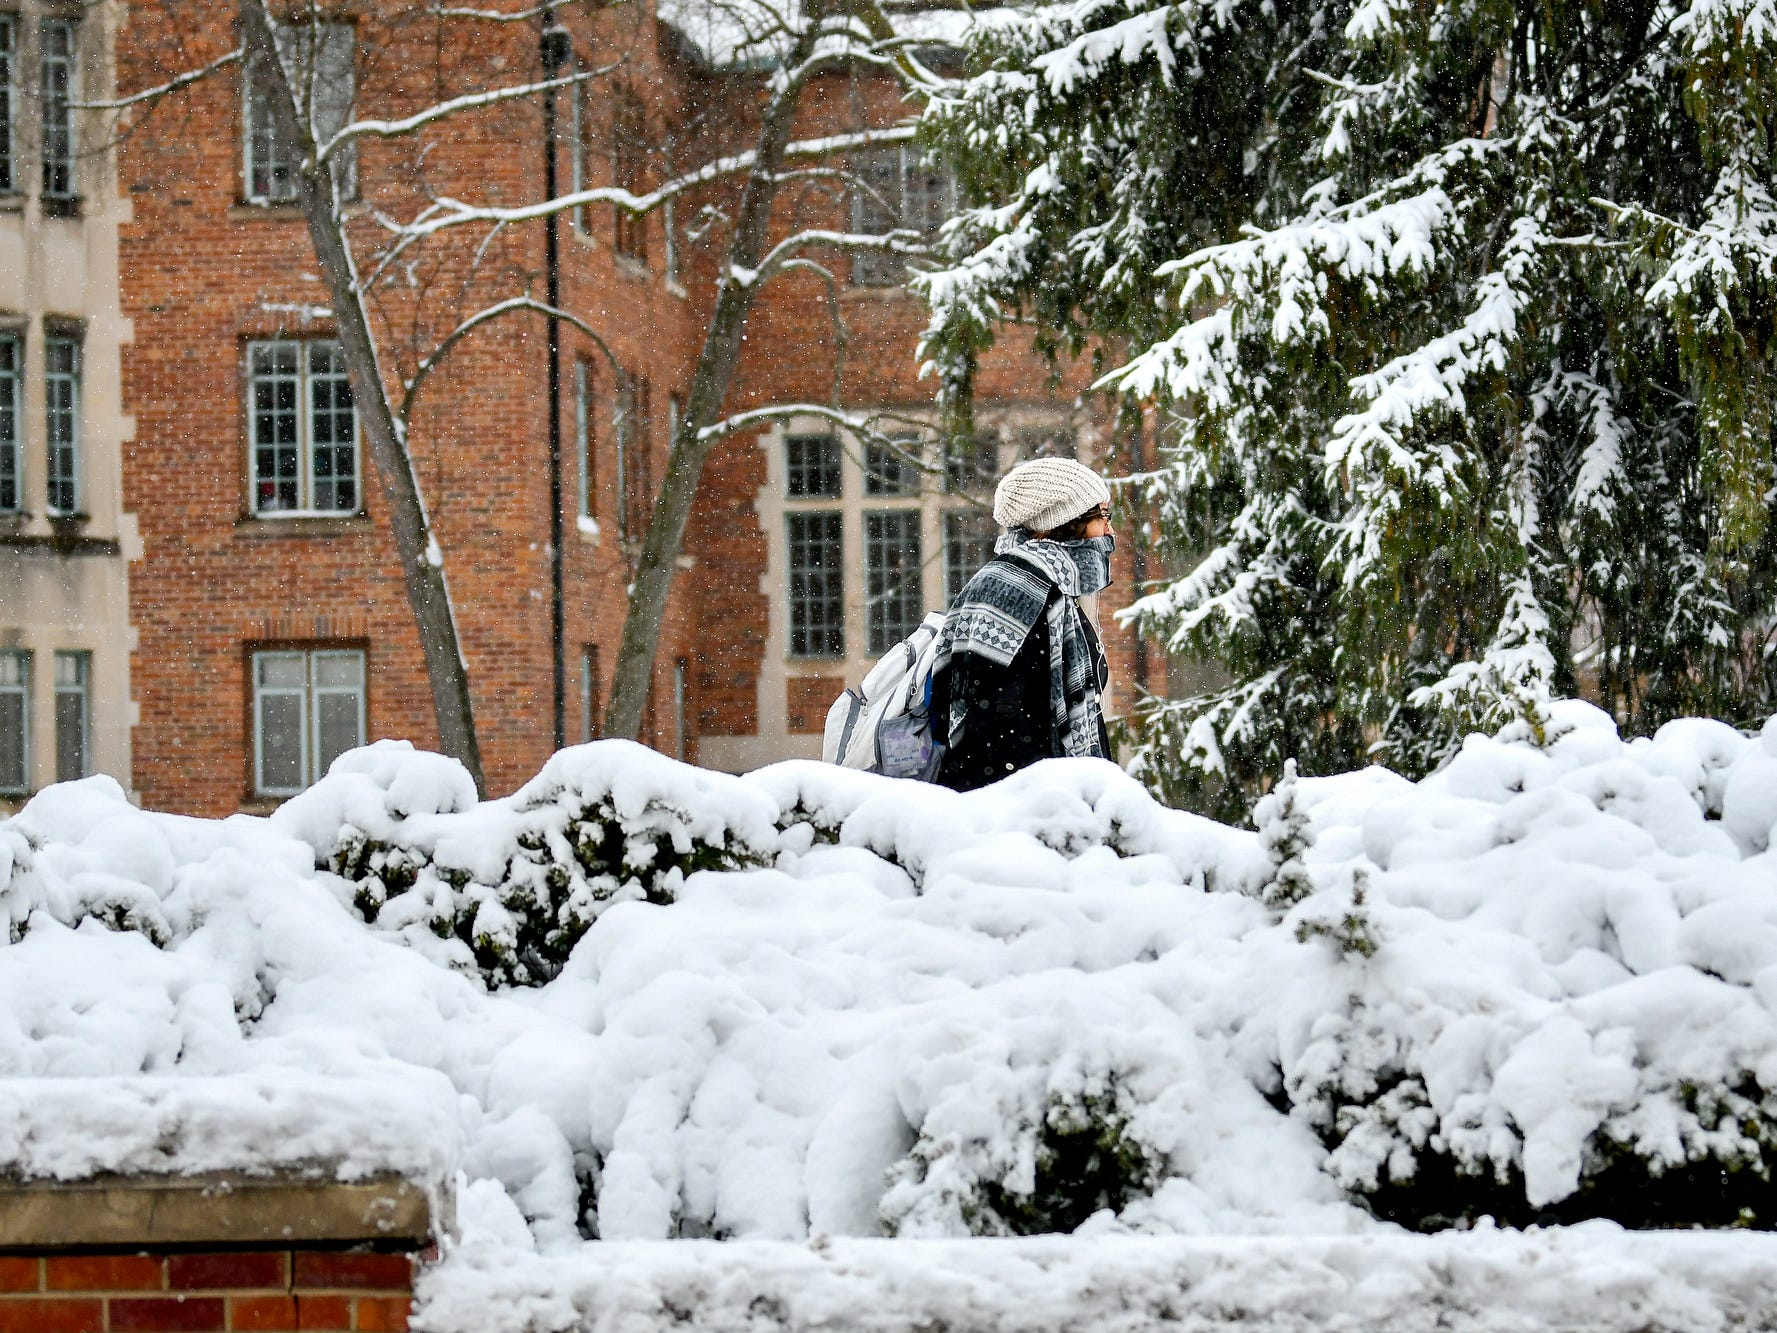 A pedestrian passes by snow-covered bushes outside Landon Hall on Monday, Nov. 26, 2018, on the Michigan State University campus in East Lansing.